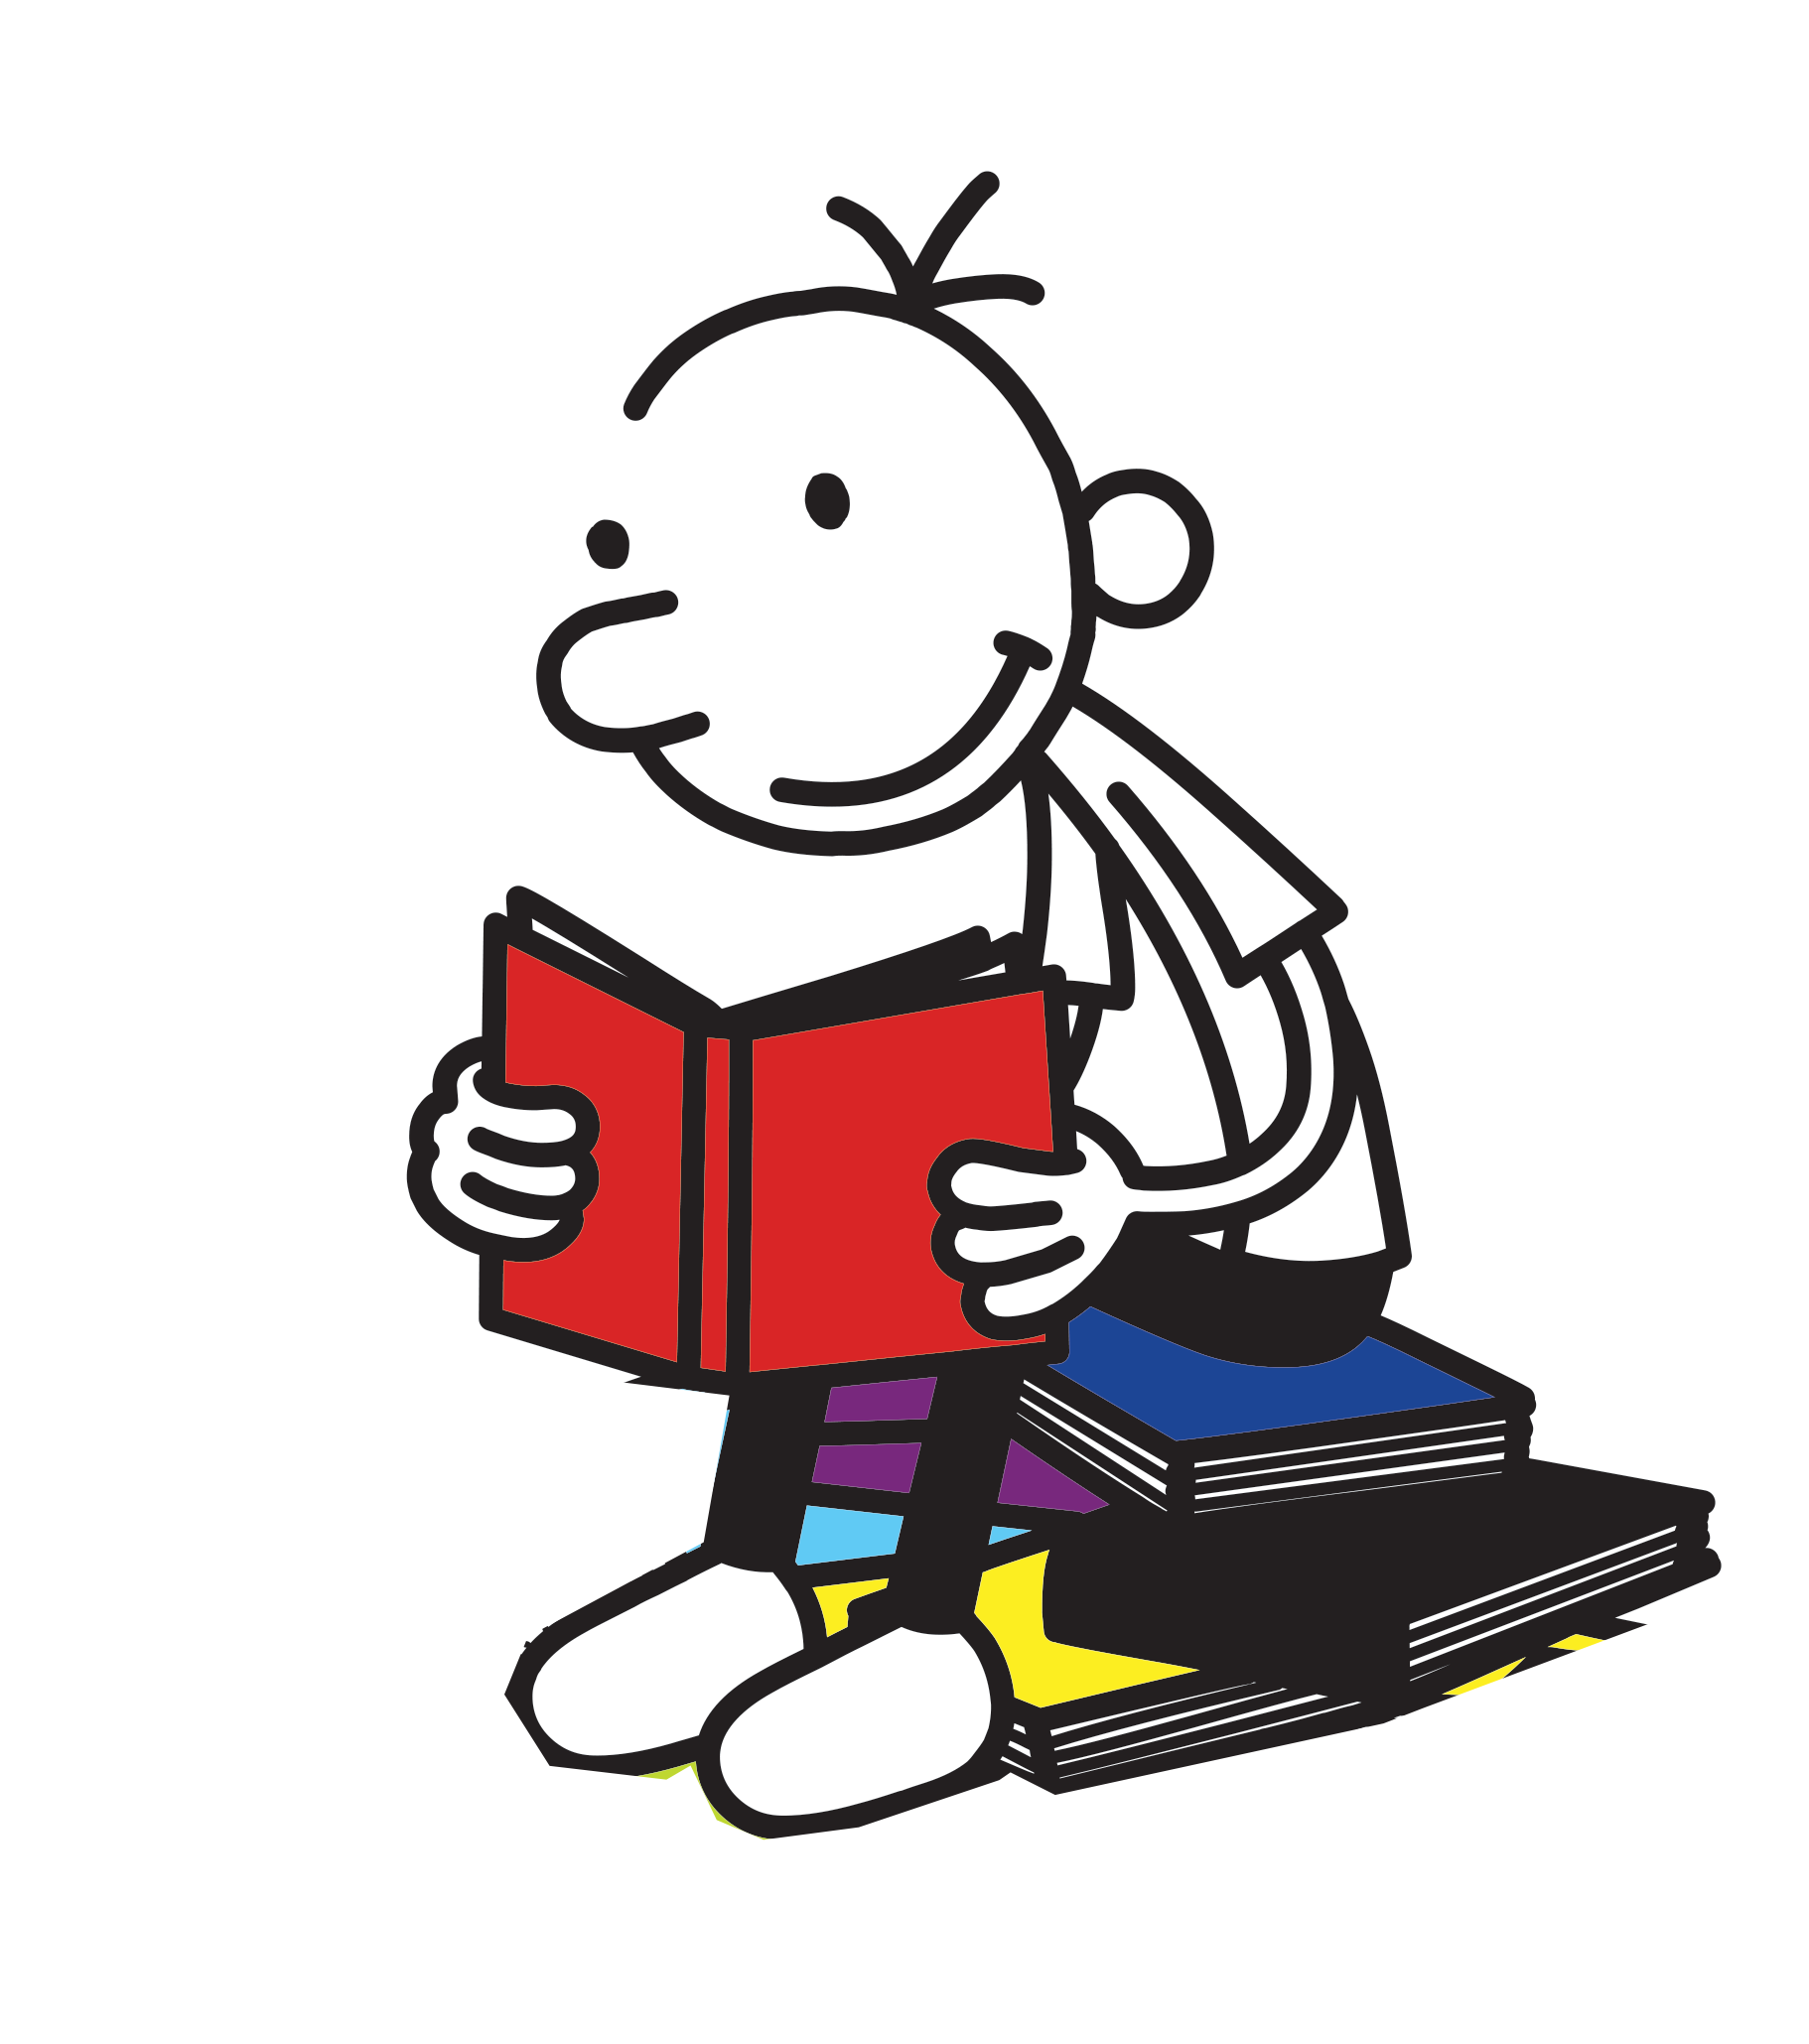 Greg-sitting-on-books.png